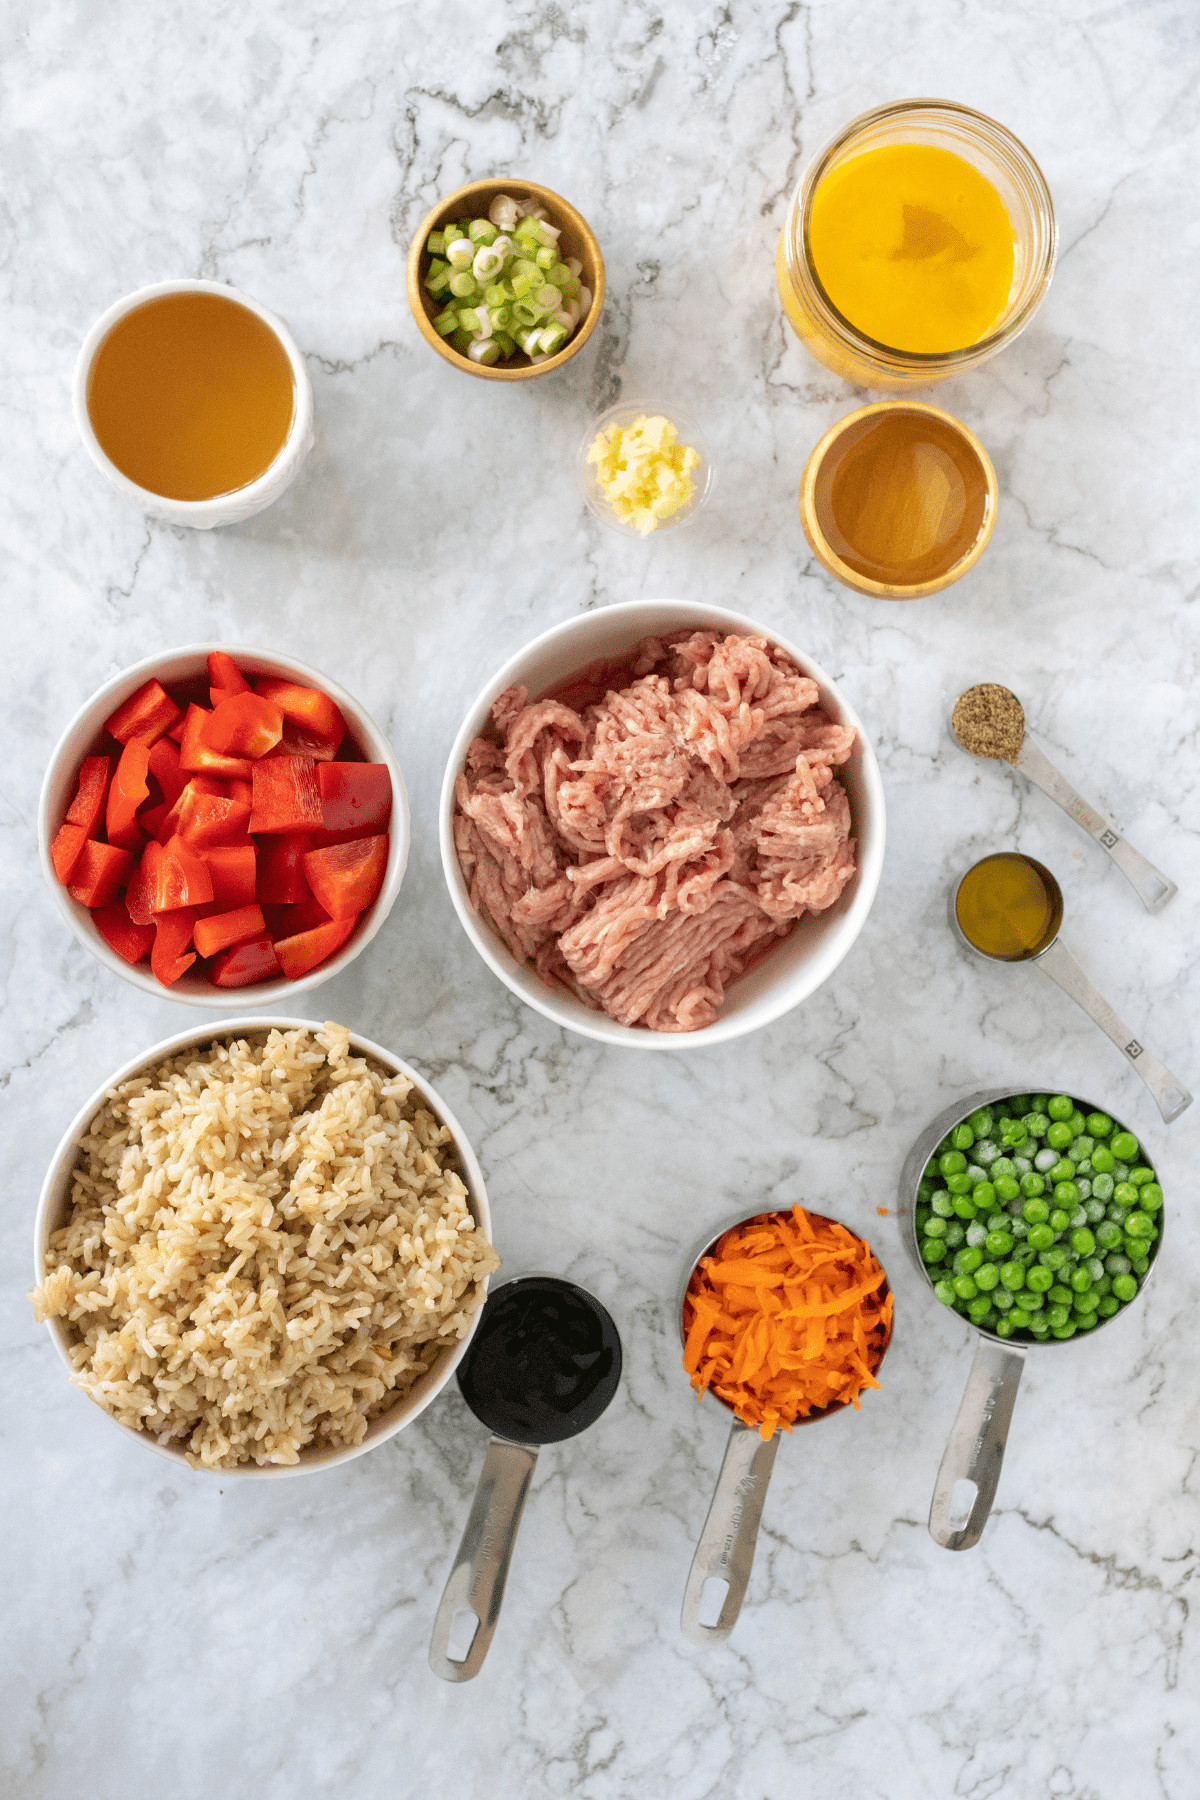 ingredients to make healthy turkey fried rice.